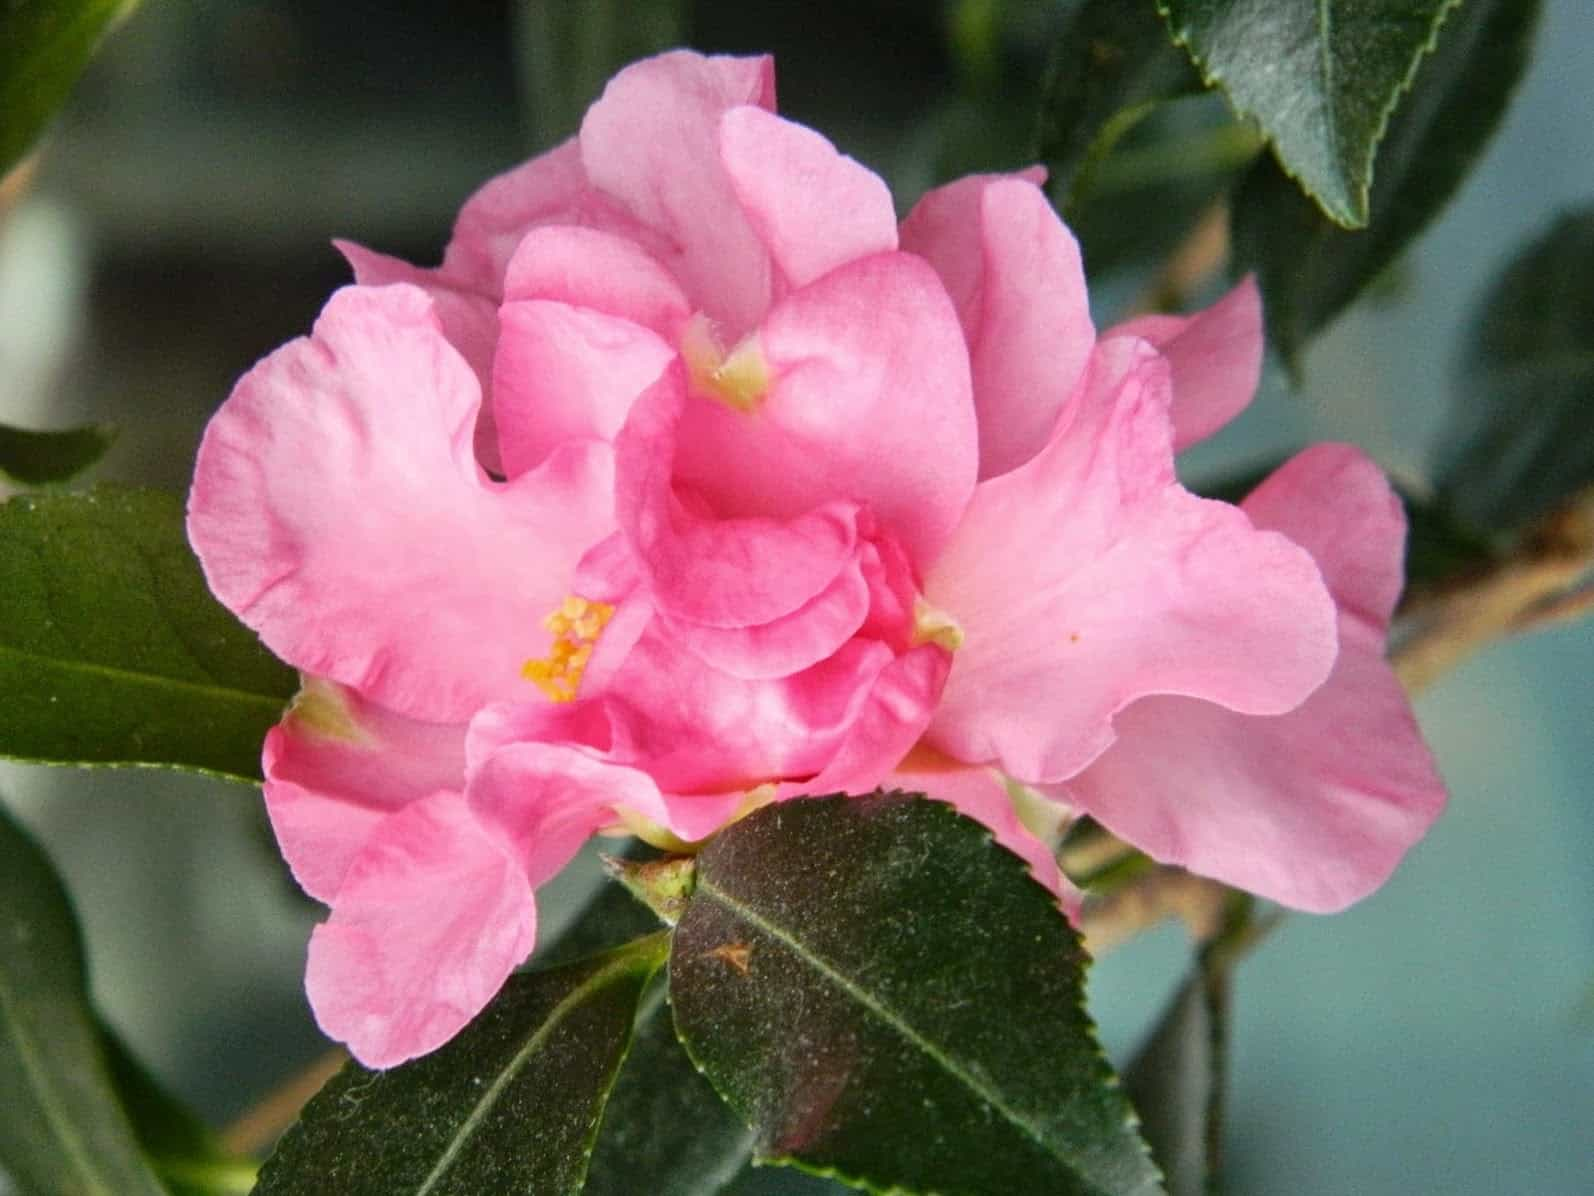 London, winter, pink, flower, camellia, camellia 'Winter's Charm', pink bloom